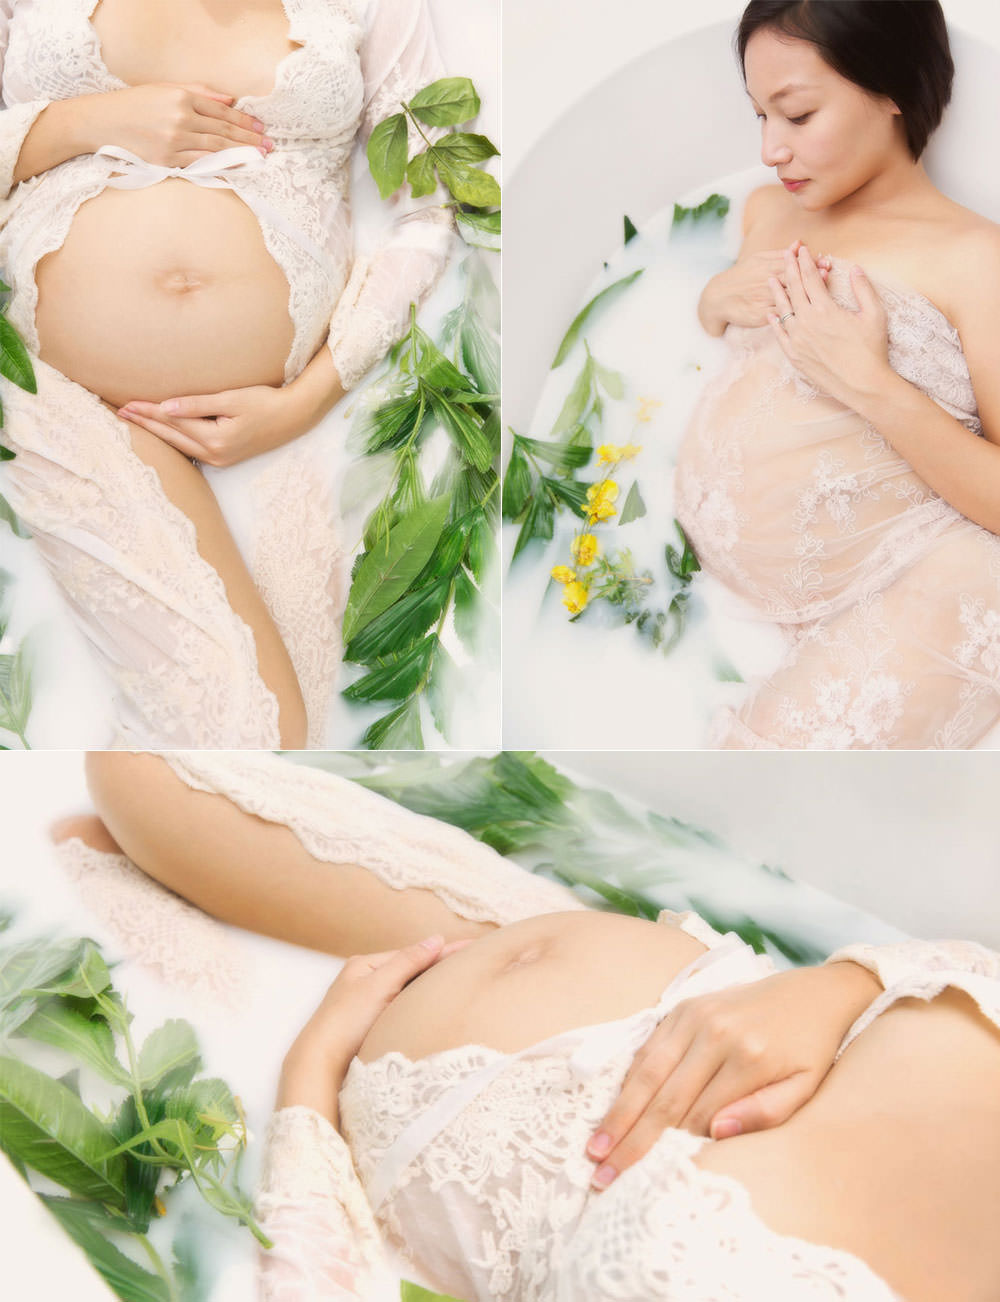 milk-bath-maternity-photography-bambini-32